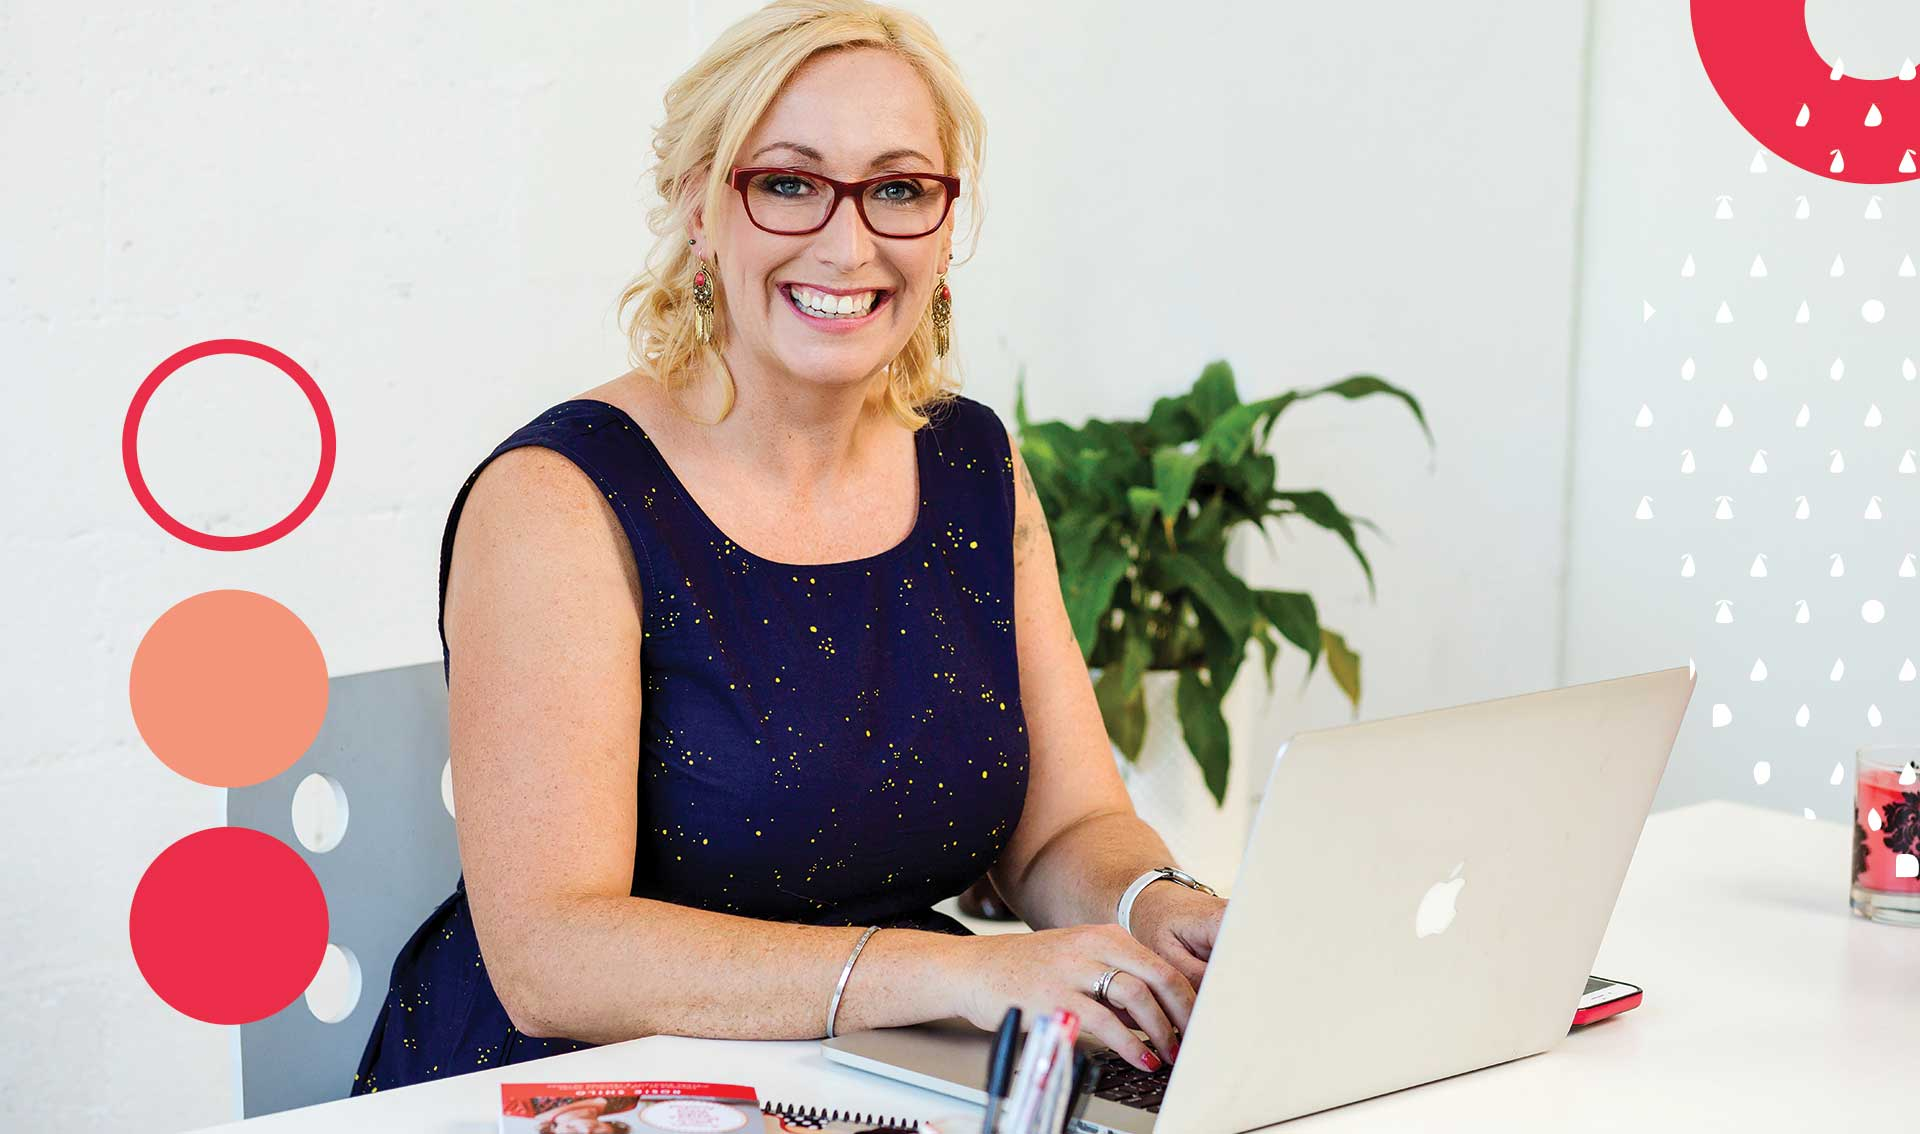 Rosie Shilo Founder Virtually Yours, Speaker, Virtual Assistant Advocate